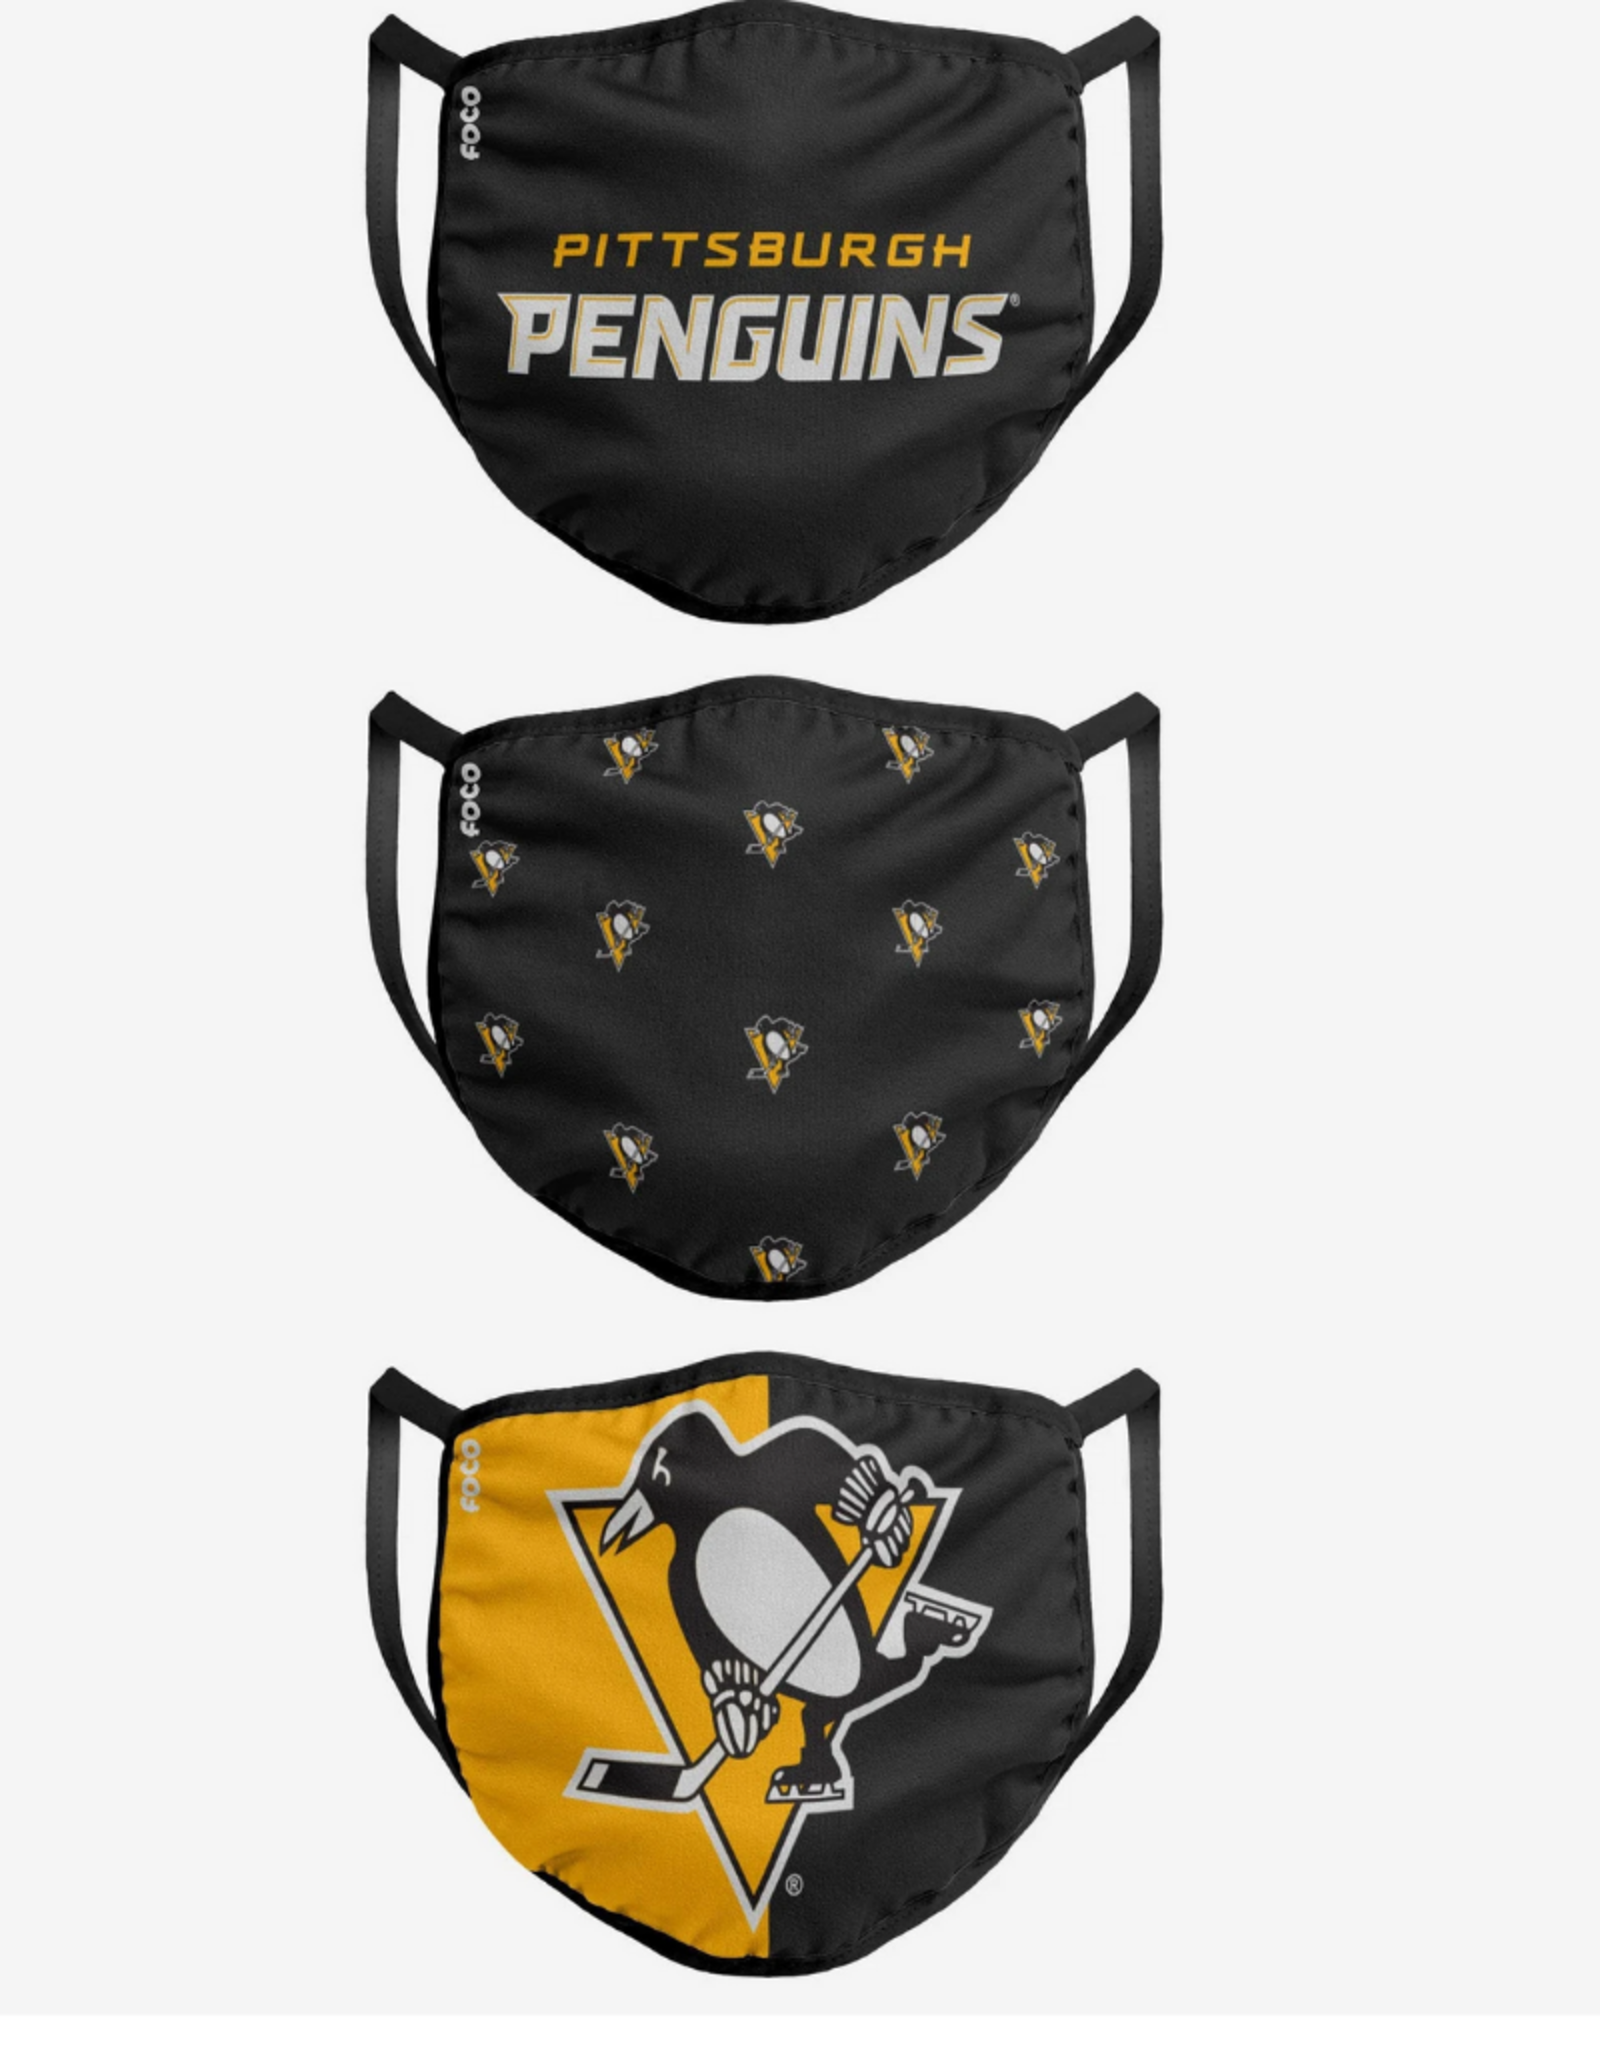 FOCO FOCO Youth Face Cover 3 Pack Pittsburgh Penguins